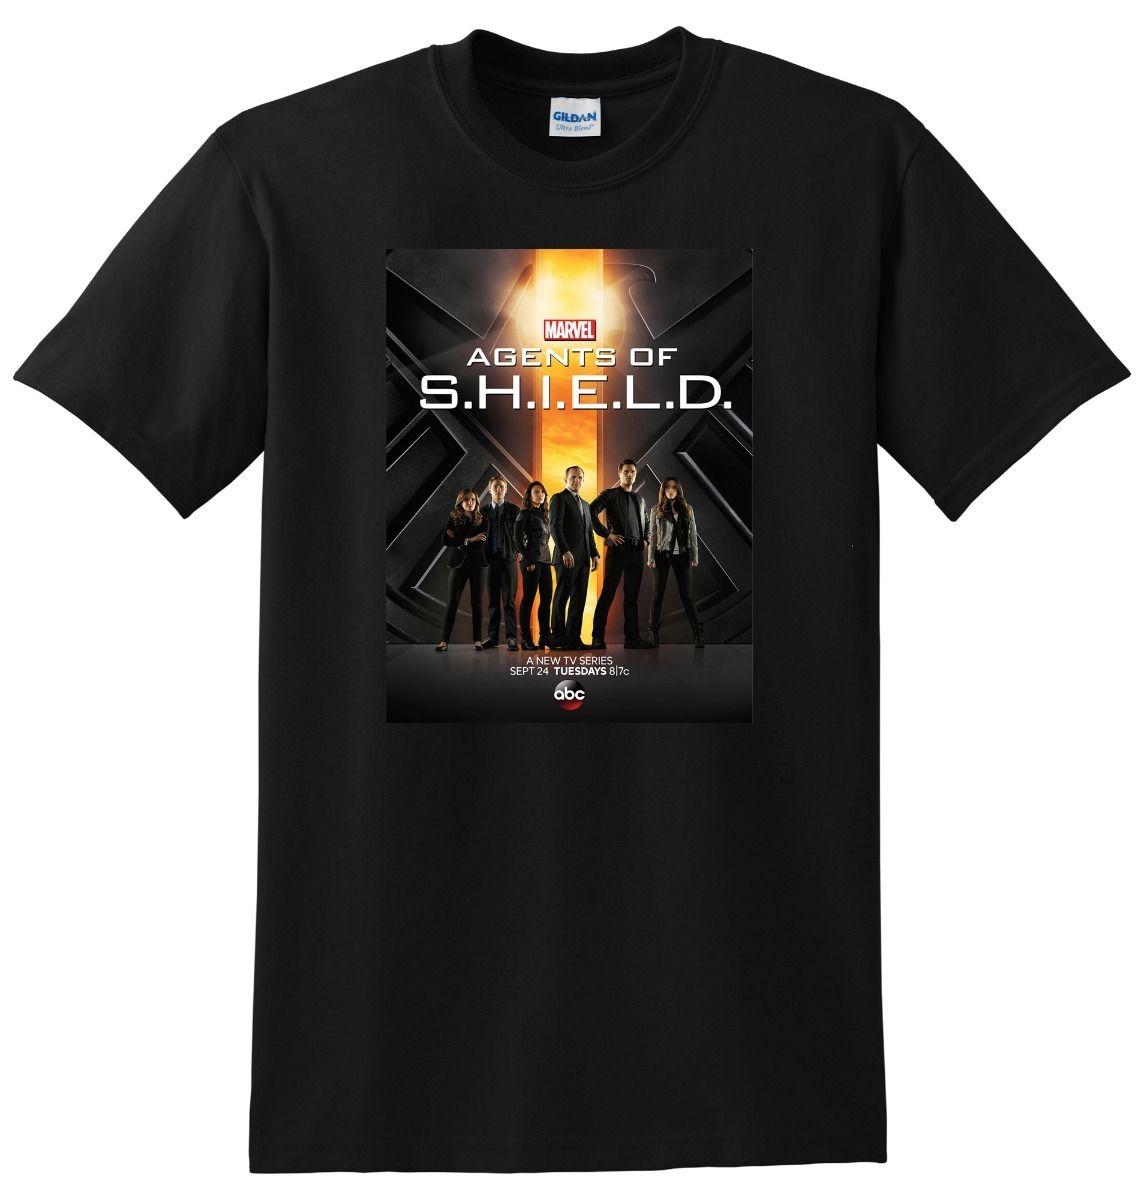 AGENTS OF SHIELD T SHIRT s.h.i.e.l.d season 1 2 S-3XL Simple Short-Sleeved Cotton T-Shirt Top Tee Print Tee Shirts